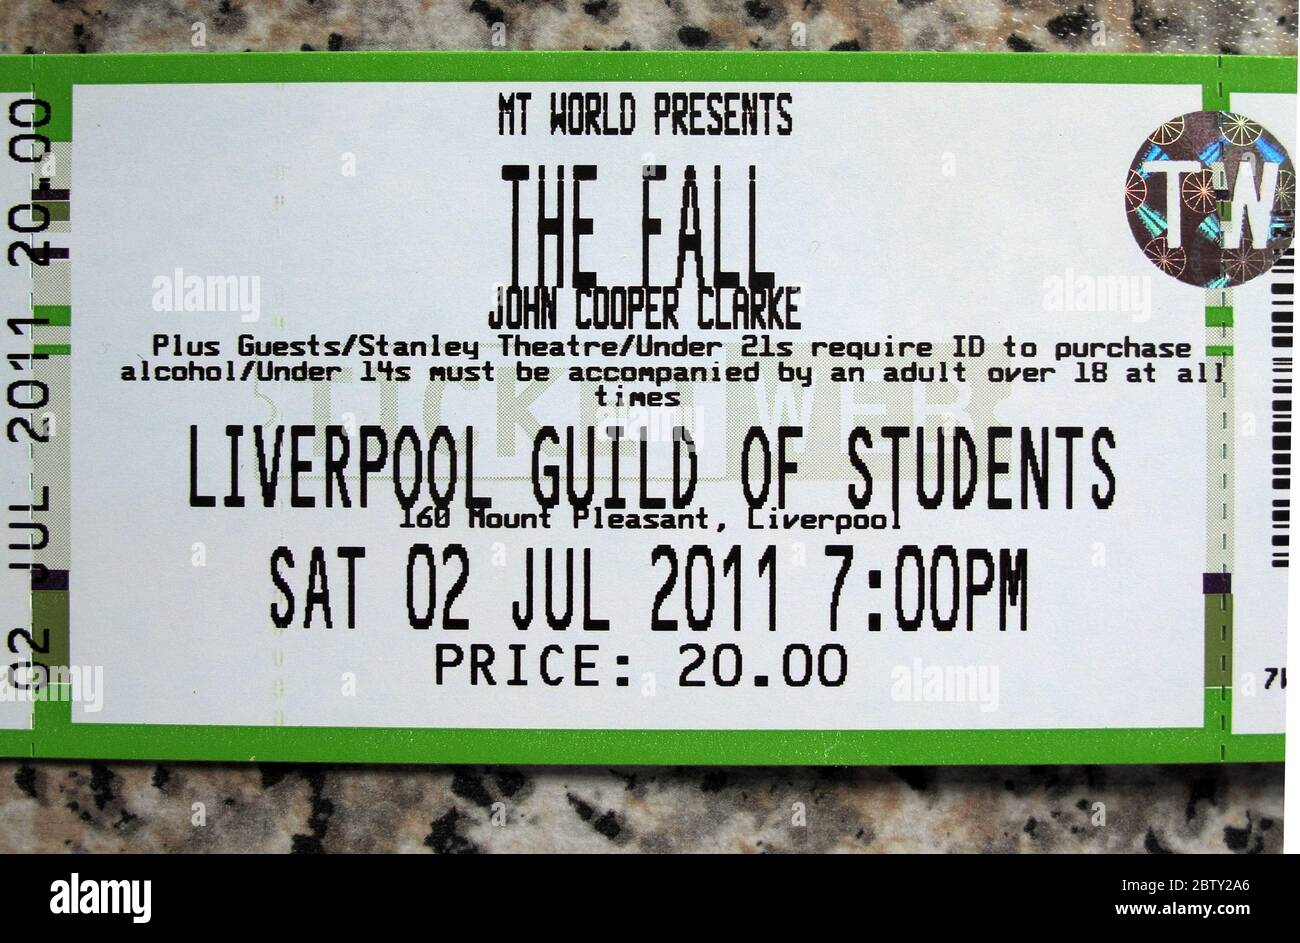 Dieses Stockfoto: The Fall, Gig Ticket, Liverpool Guild of Students, Sa 02 Jul 2011, John Cooper Clarke - 2BTY2A